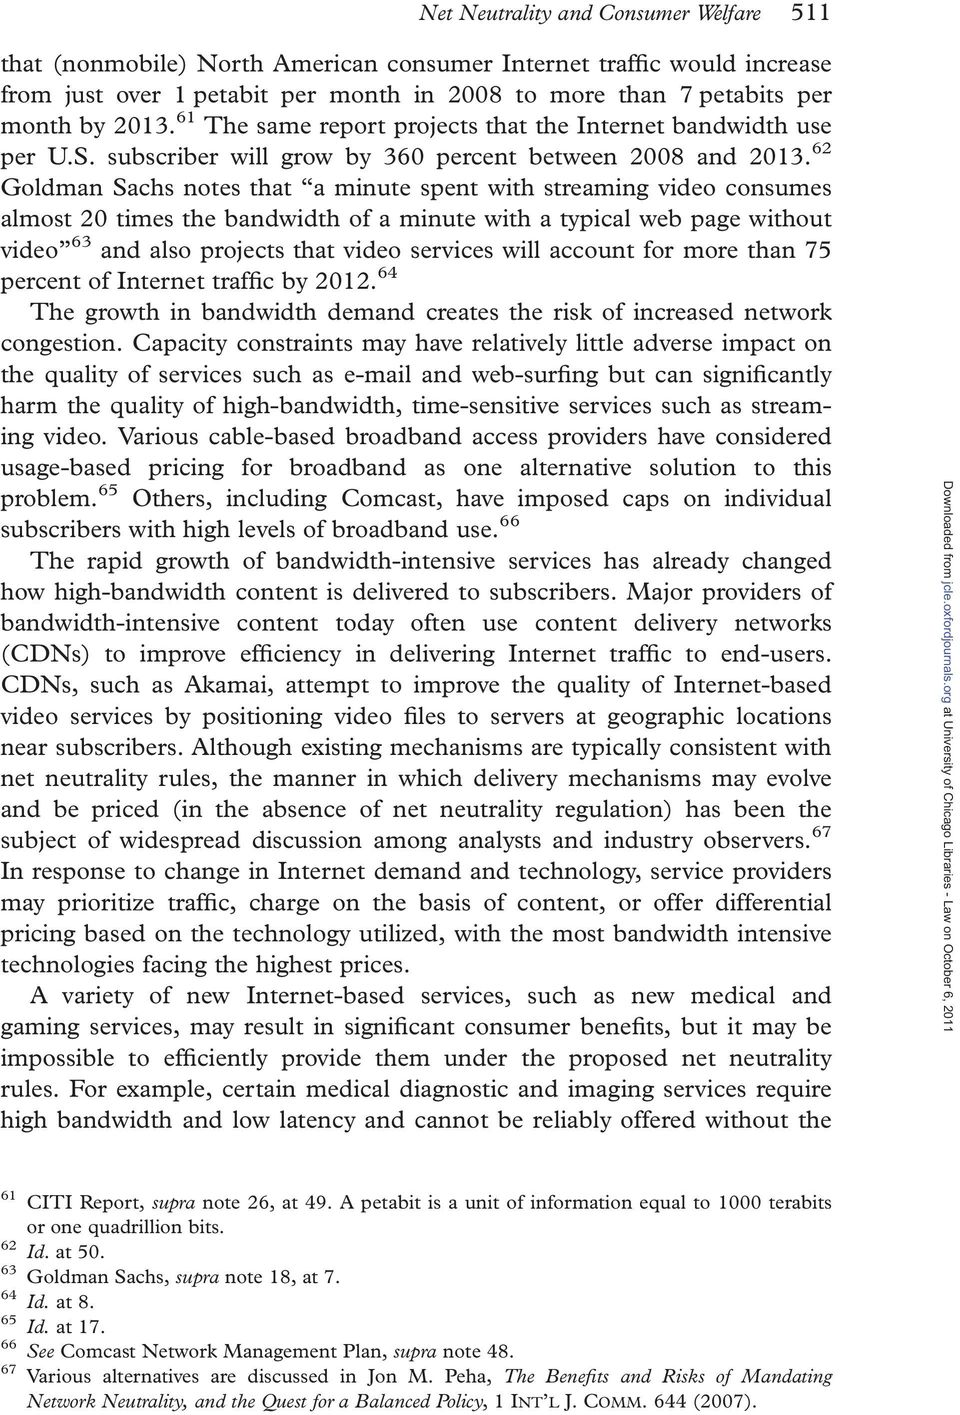 62 Goldman Sachs notes that a minute spent with streaming video consumes almost 20 times the bandwidth of a minute with a typical web page without video 63 and also projects that video services will